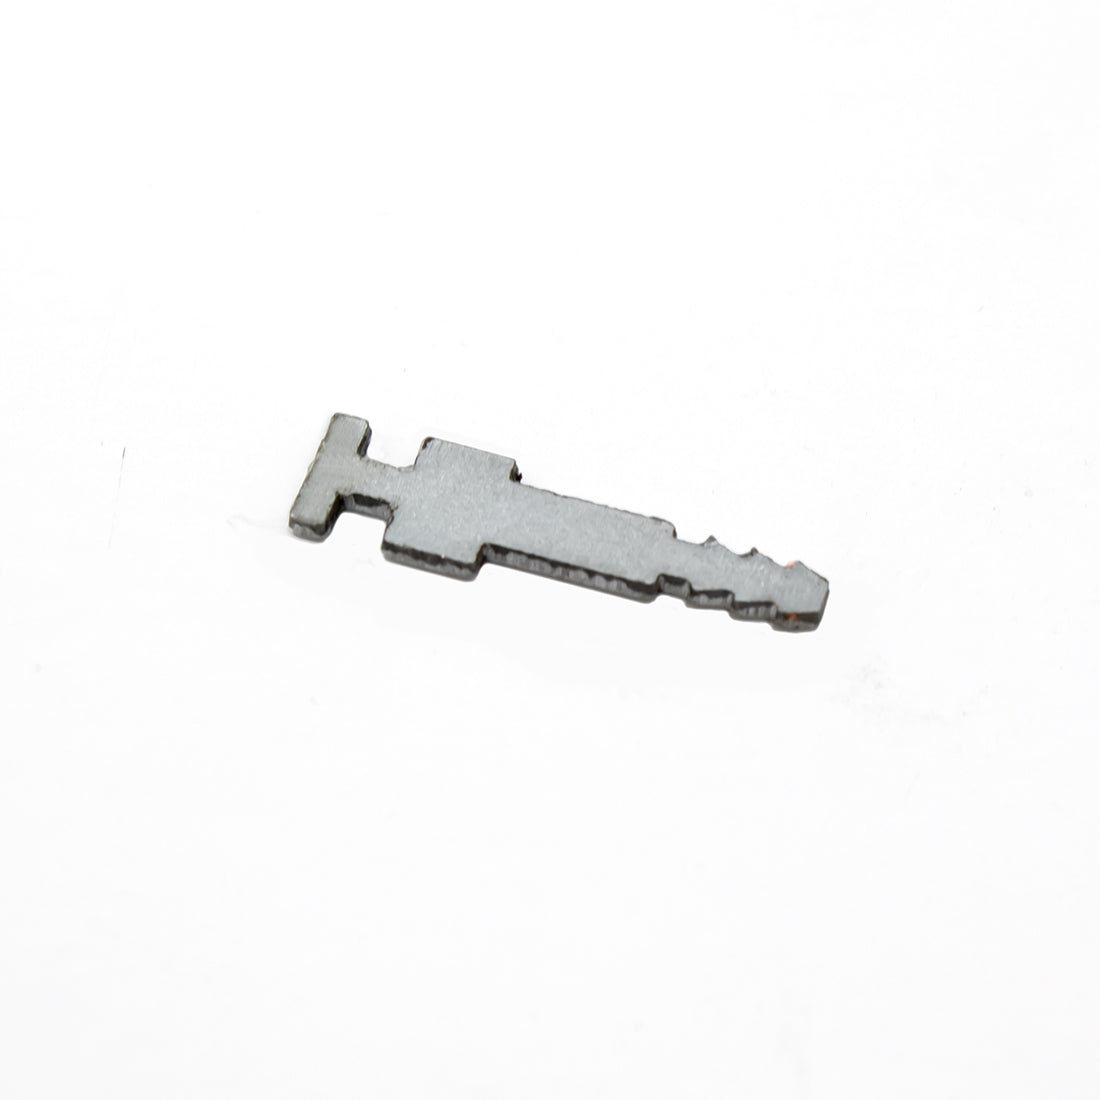 [MBA-046] Trigger lock - (For Polisher)